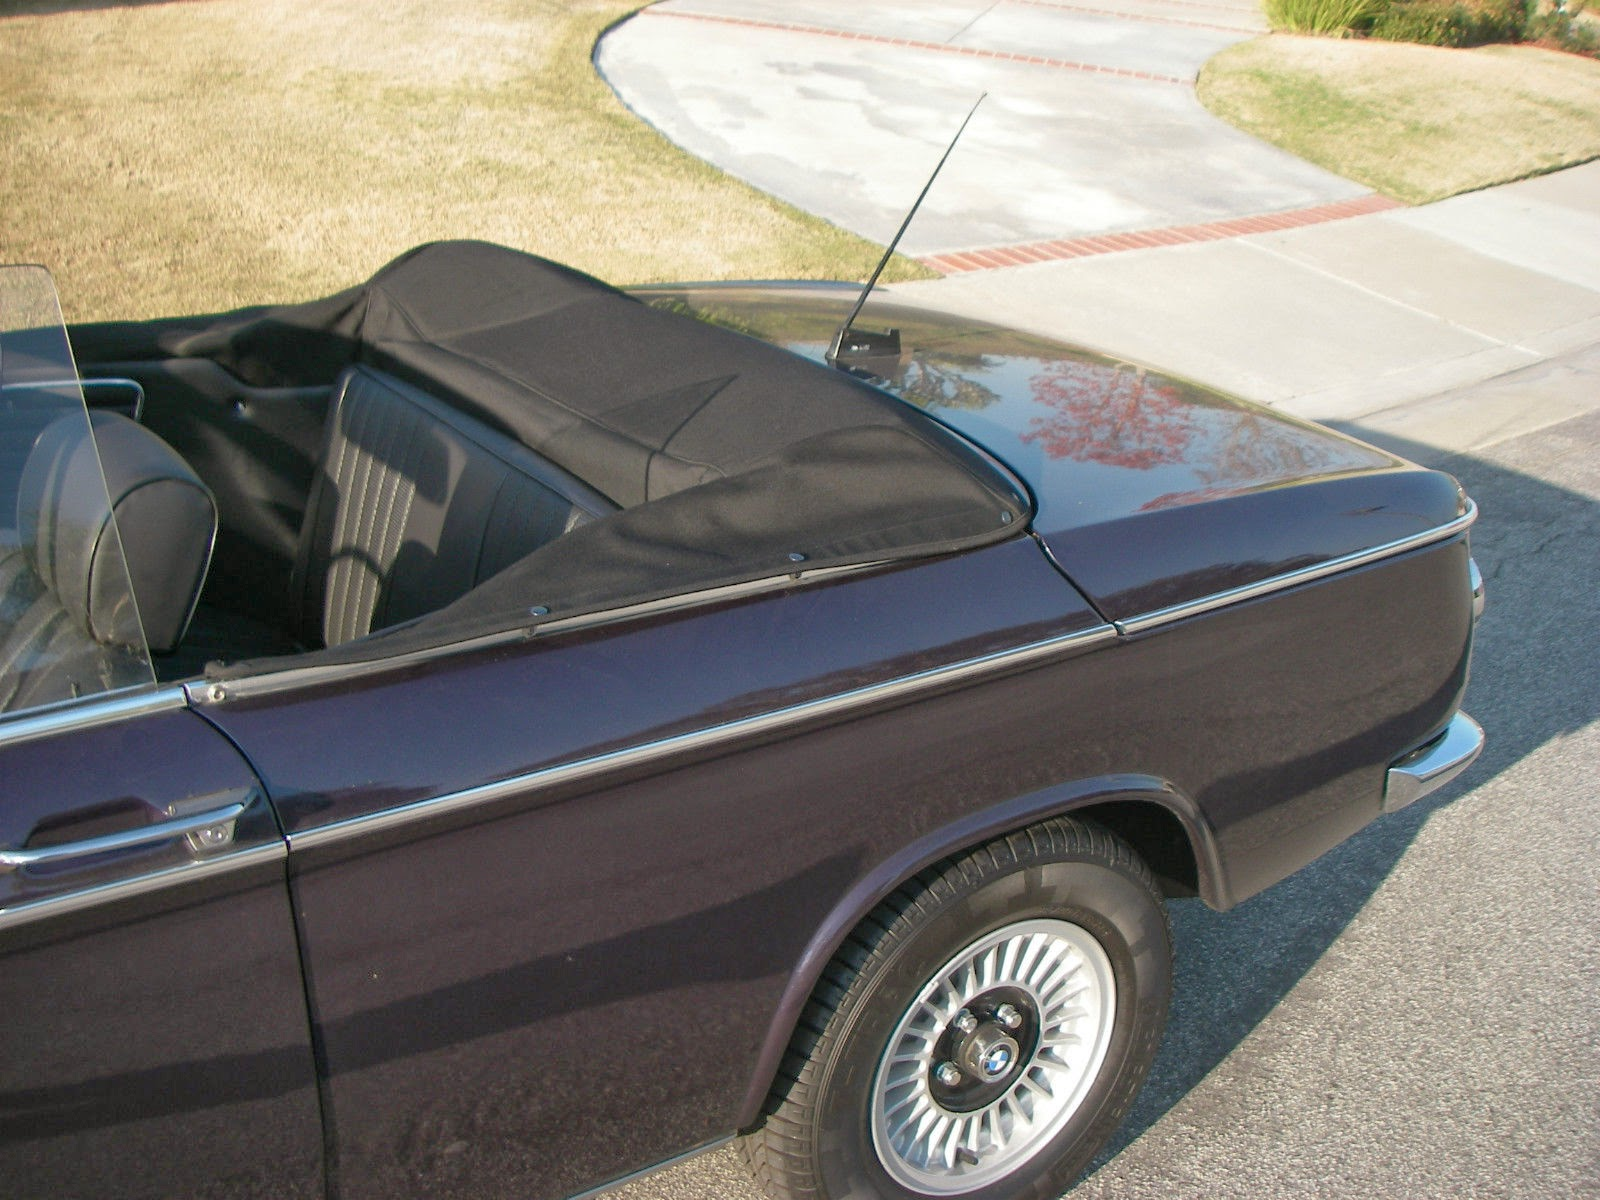 Baurspotting Buy It Now 65000 1968 Bmw 2002 Convertible On Ebay